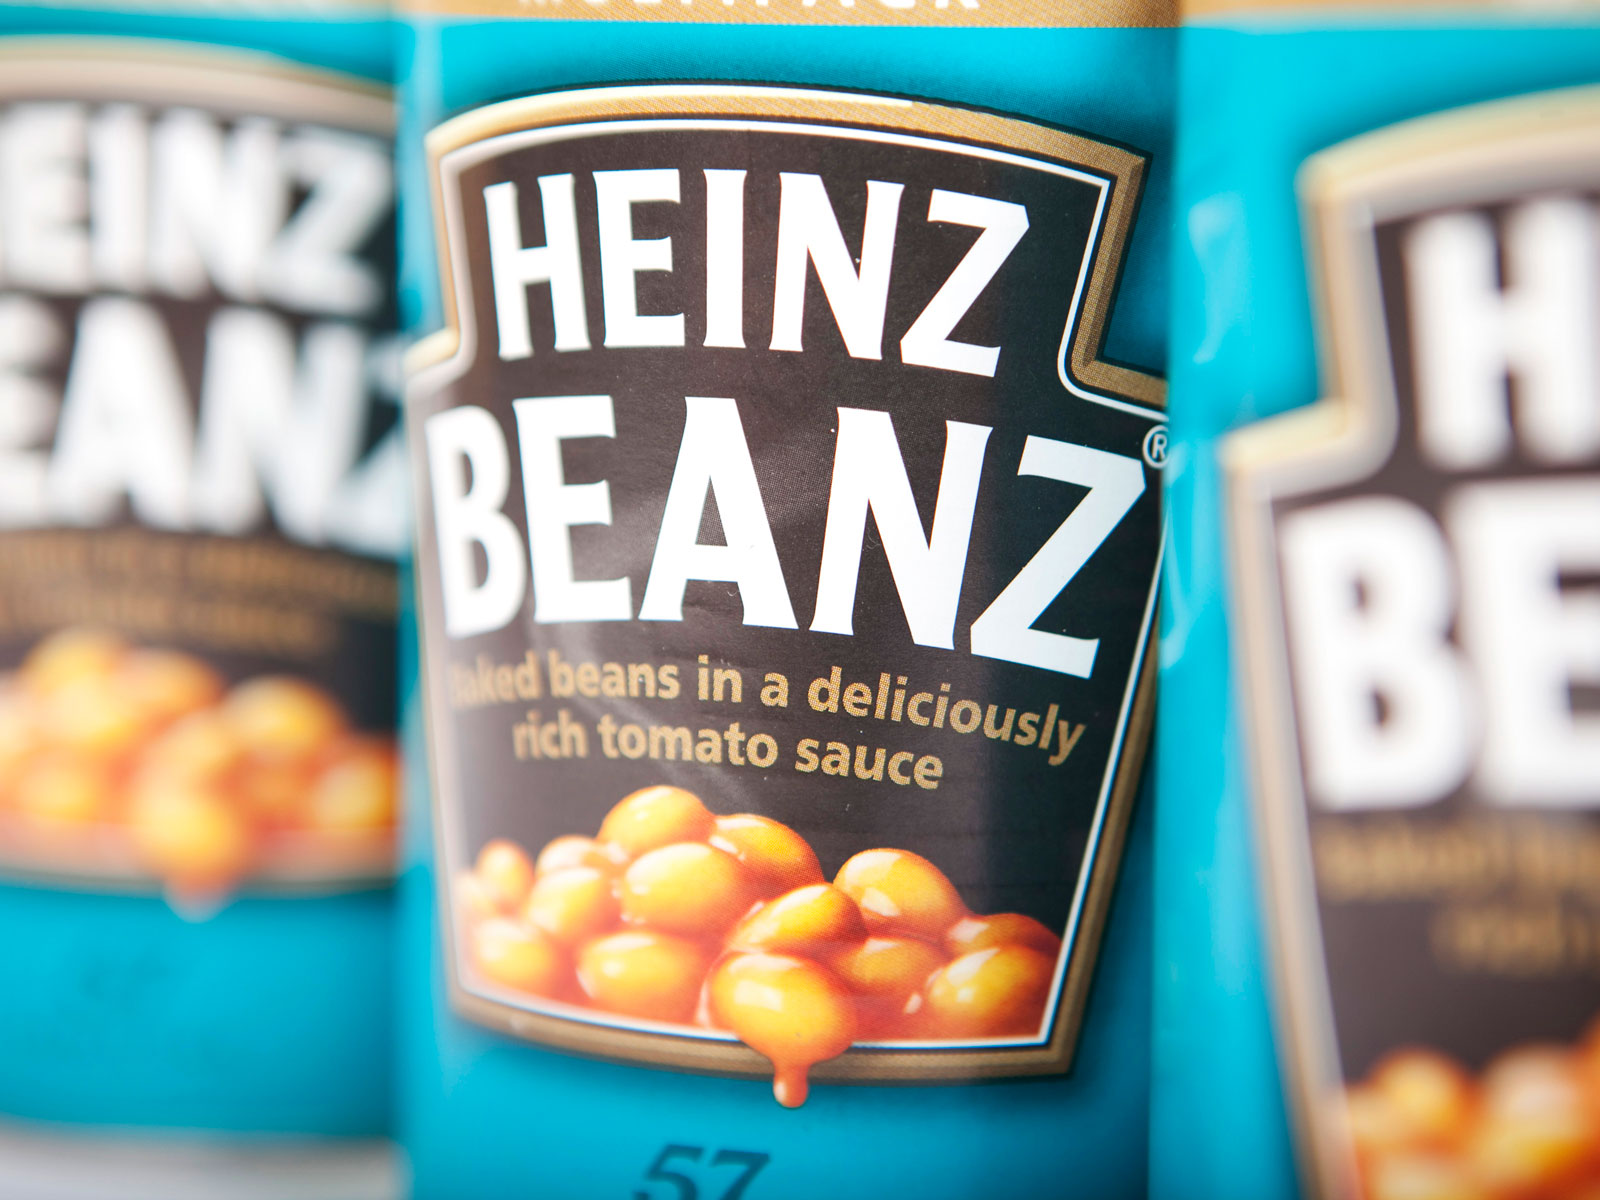 heinz-beanz-can-FT-BLOG0919.jpg